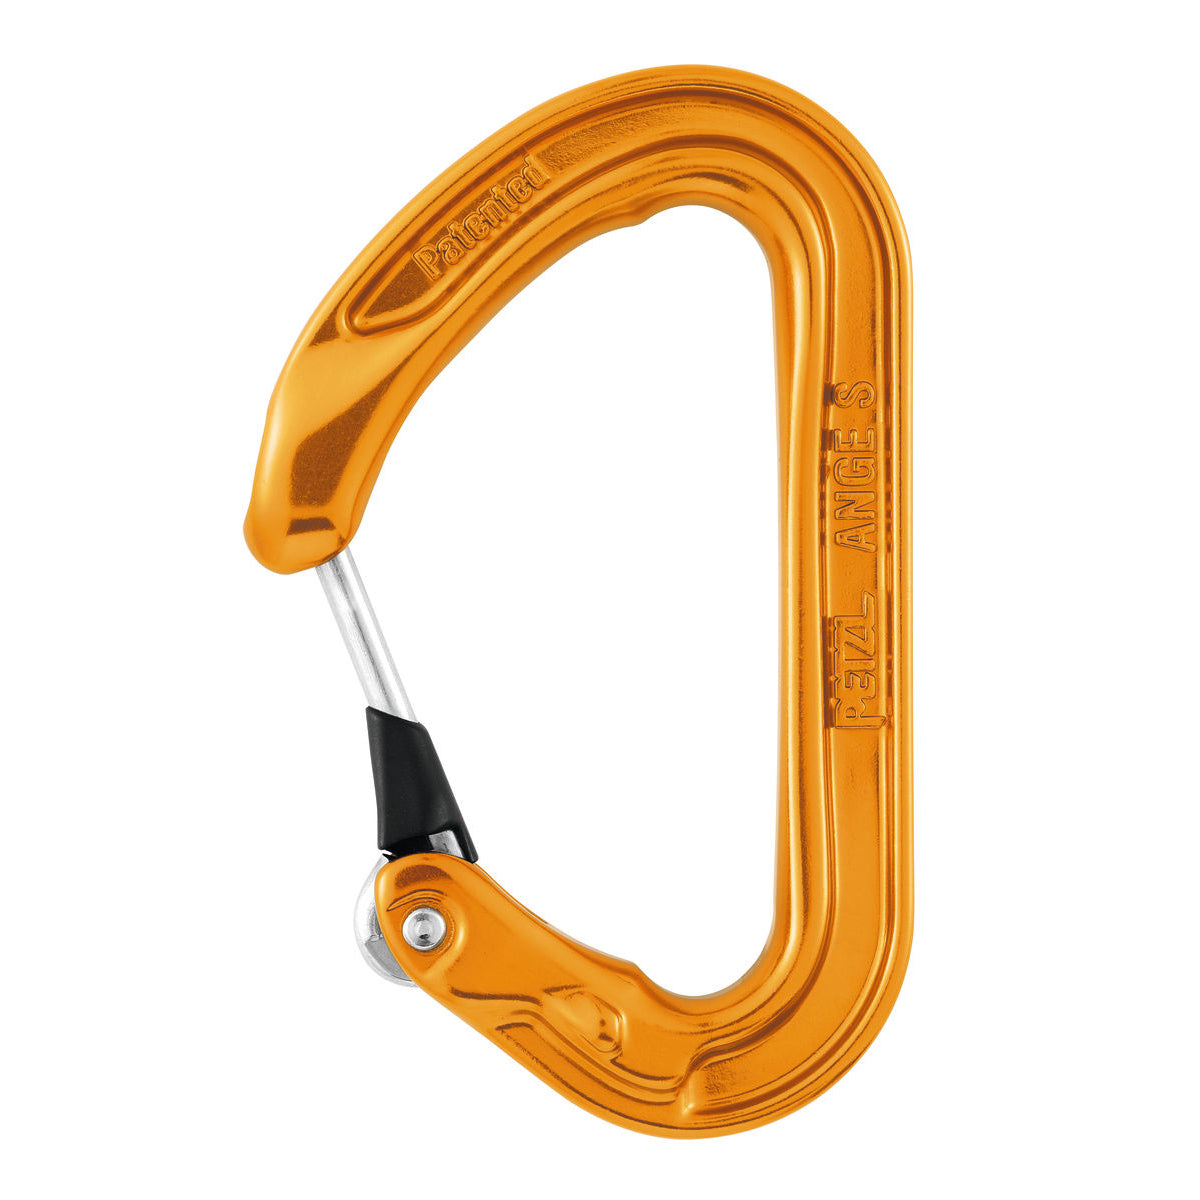 Petzl ANGE S climbing carabiner in orange colour, with silver gate closed